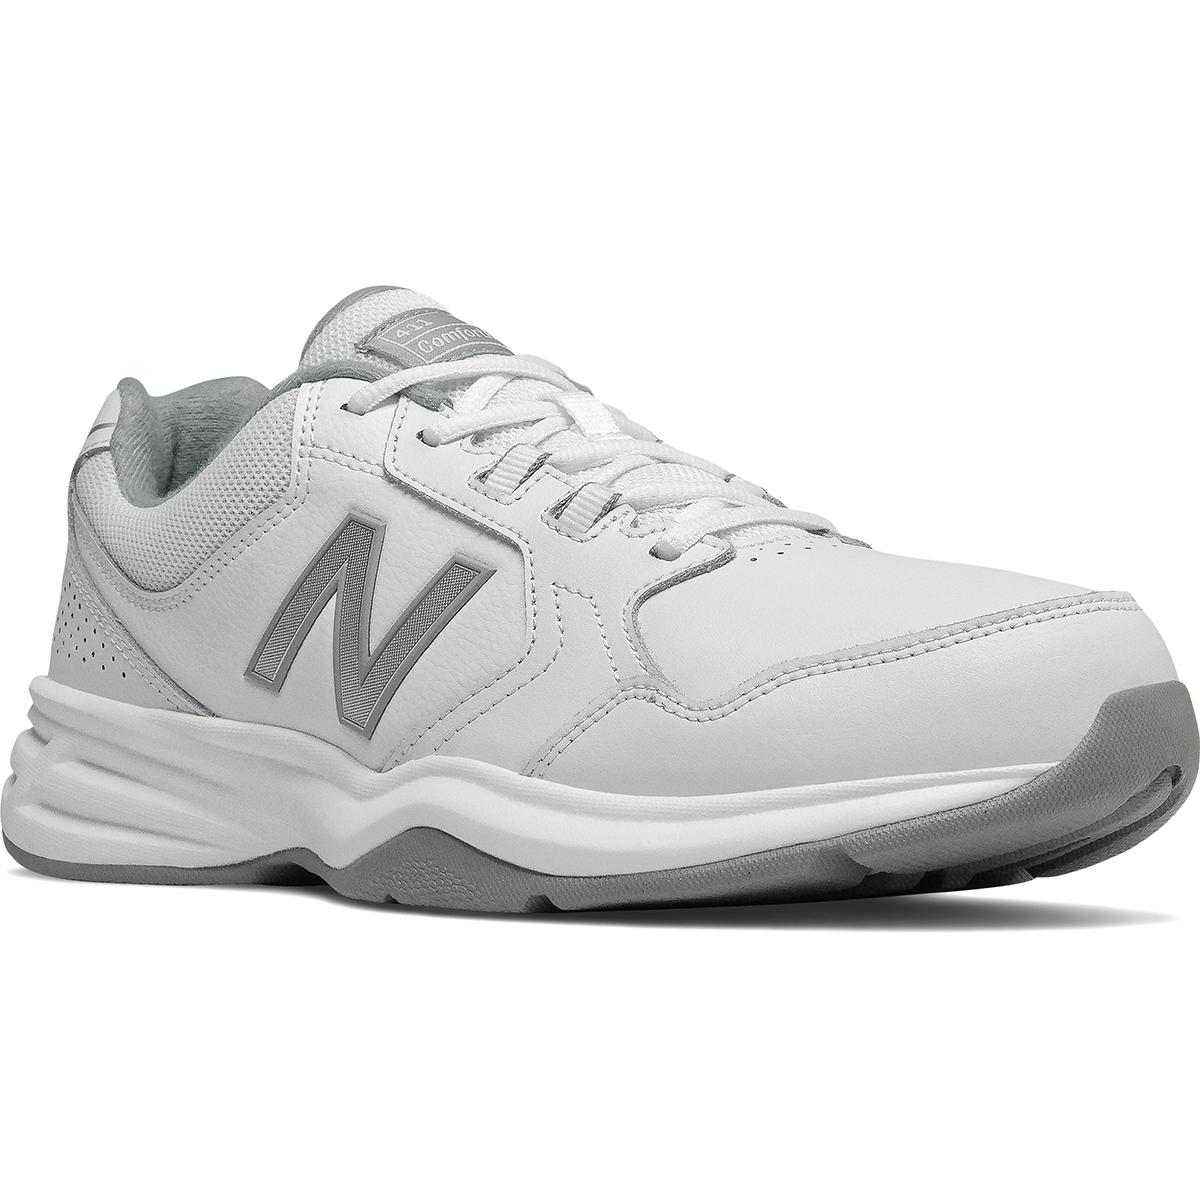 New Balance Men's 411 Walking Shoes, Wide - White, 12